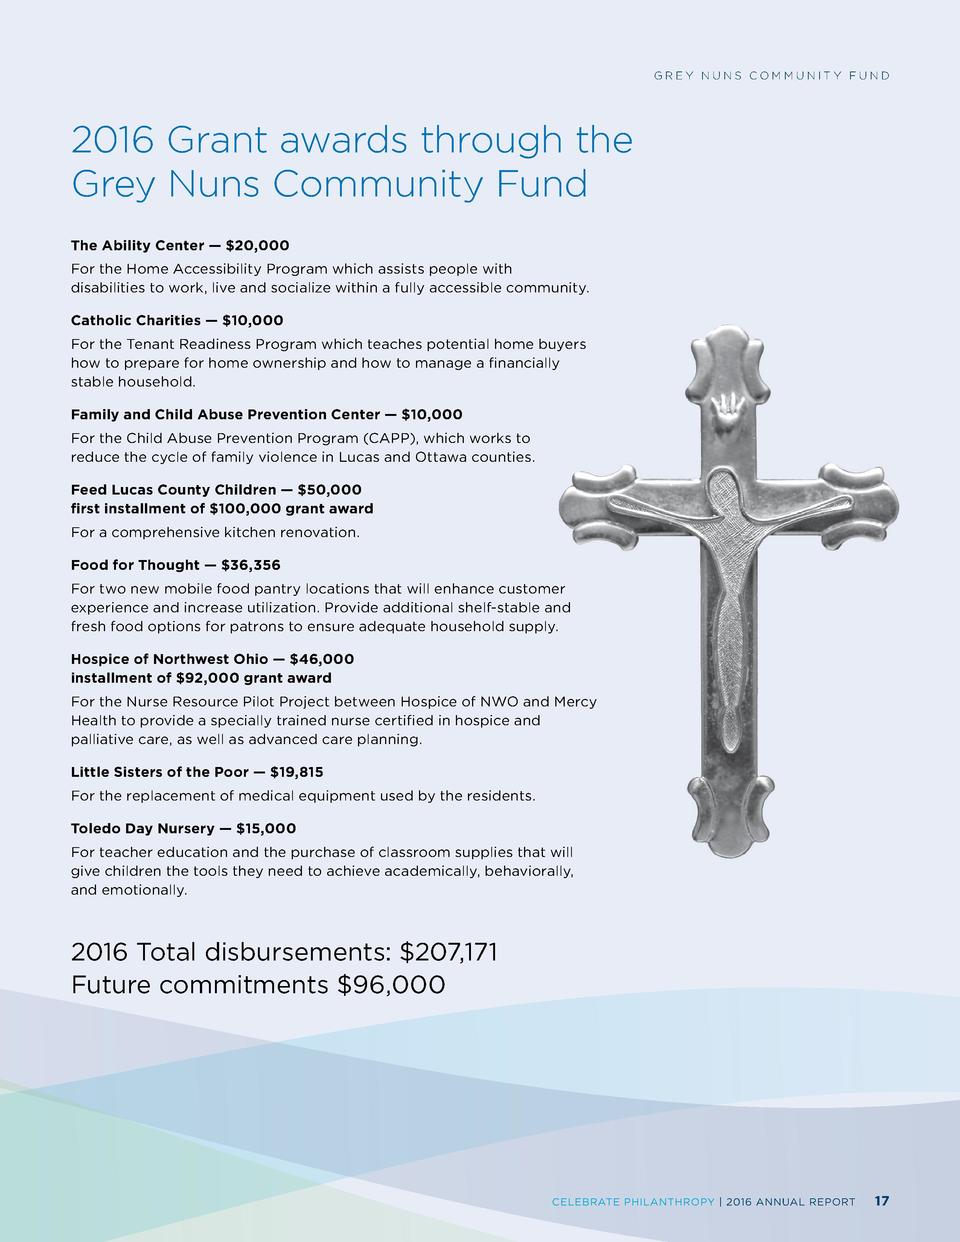 GREY NUNS COMMUNITY FUND  2016 Grant awards through the Grey Nuns Community Fund The Ability Center      20,000  For the H...